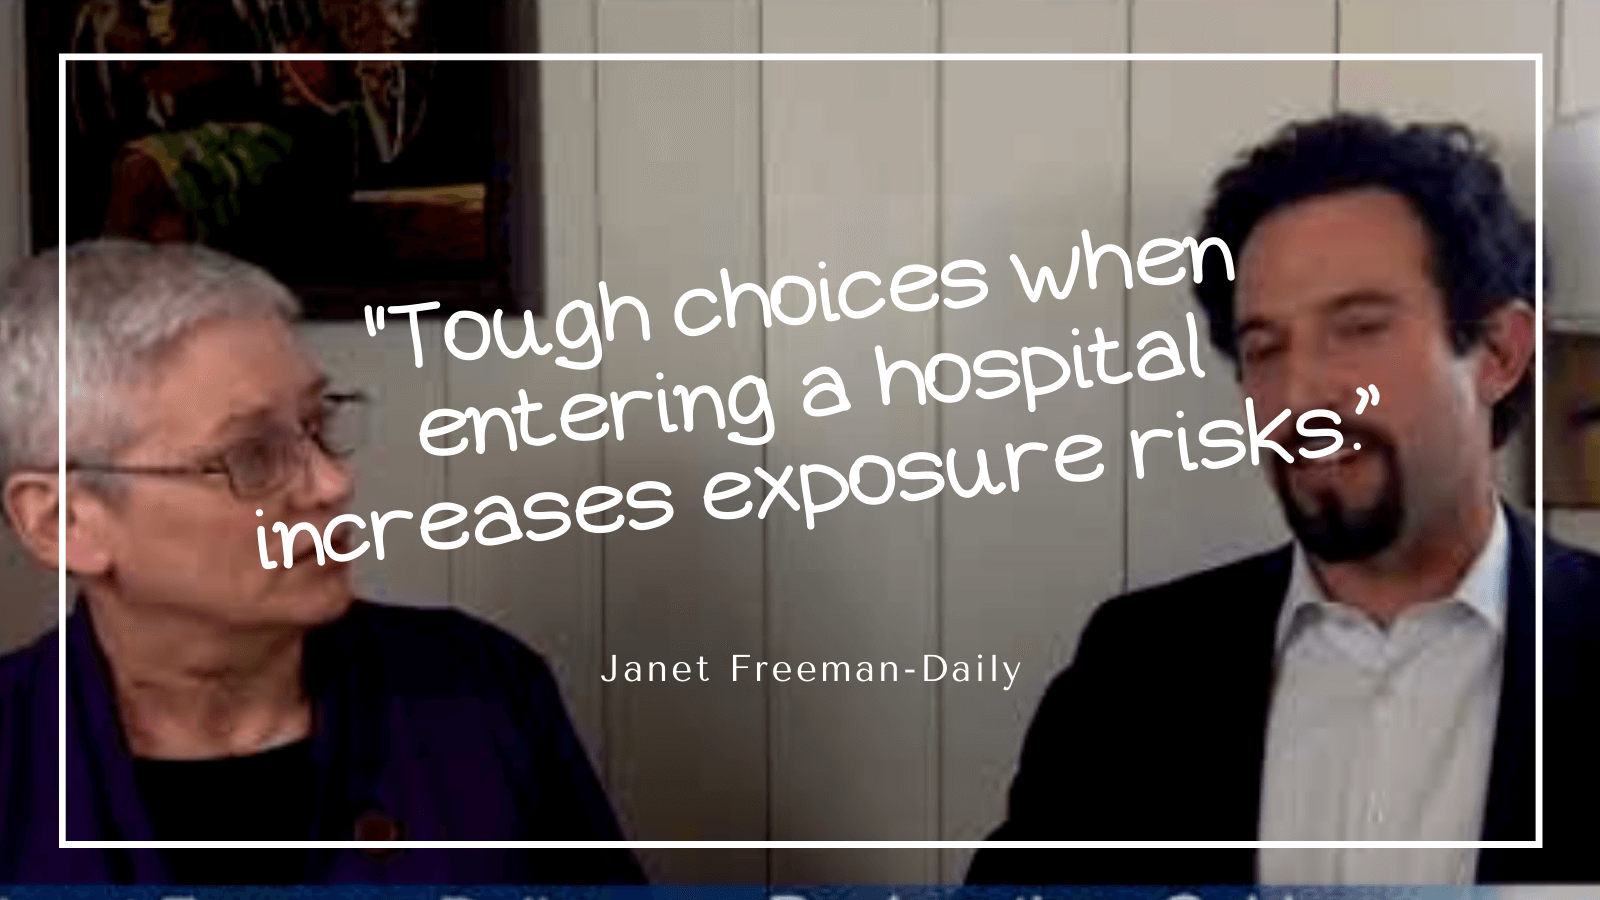 """Coronavirus and cancer: Tough choices when entering a hospital increases exposure risks."""" ~Janet Freeman-Daily"""